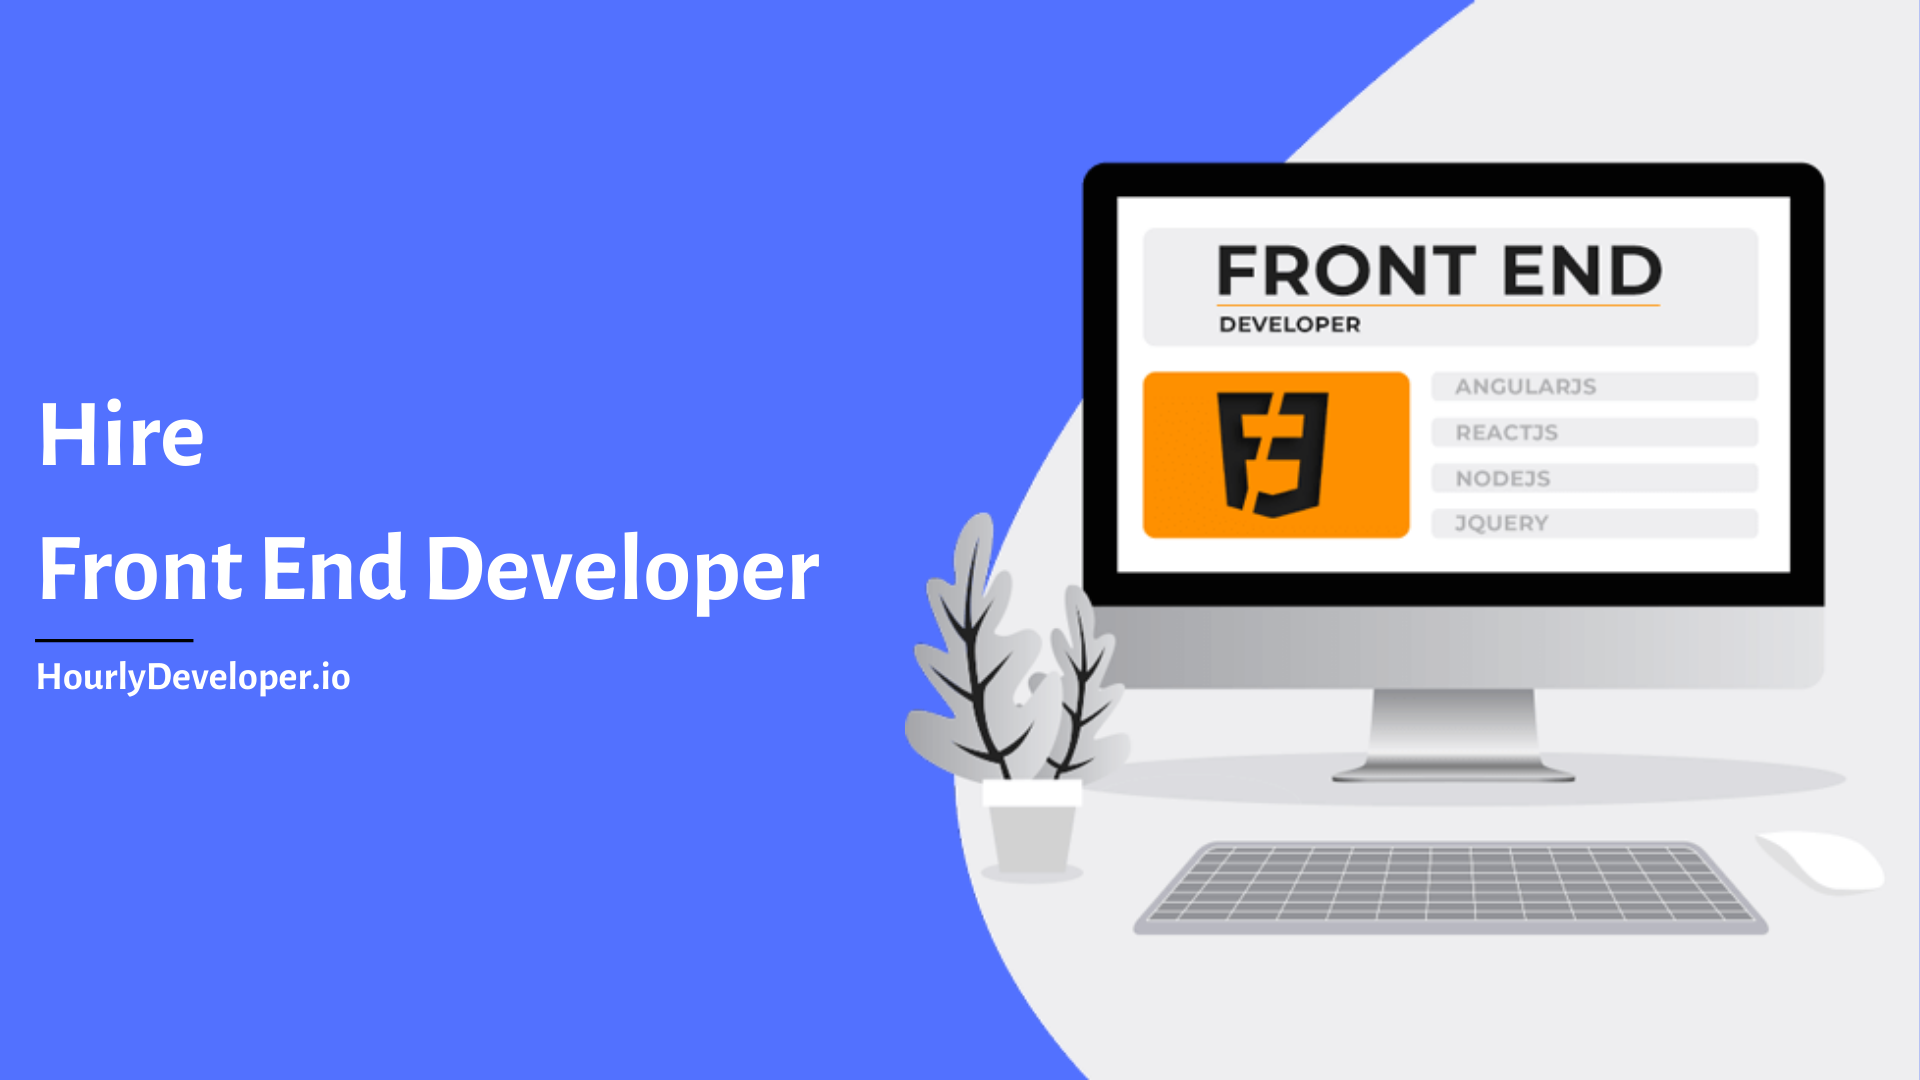 Hire Front End Developer